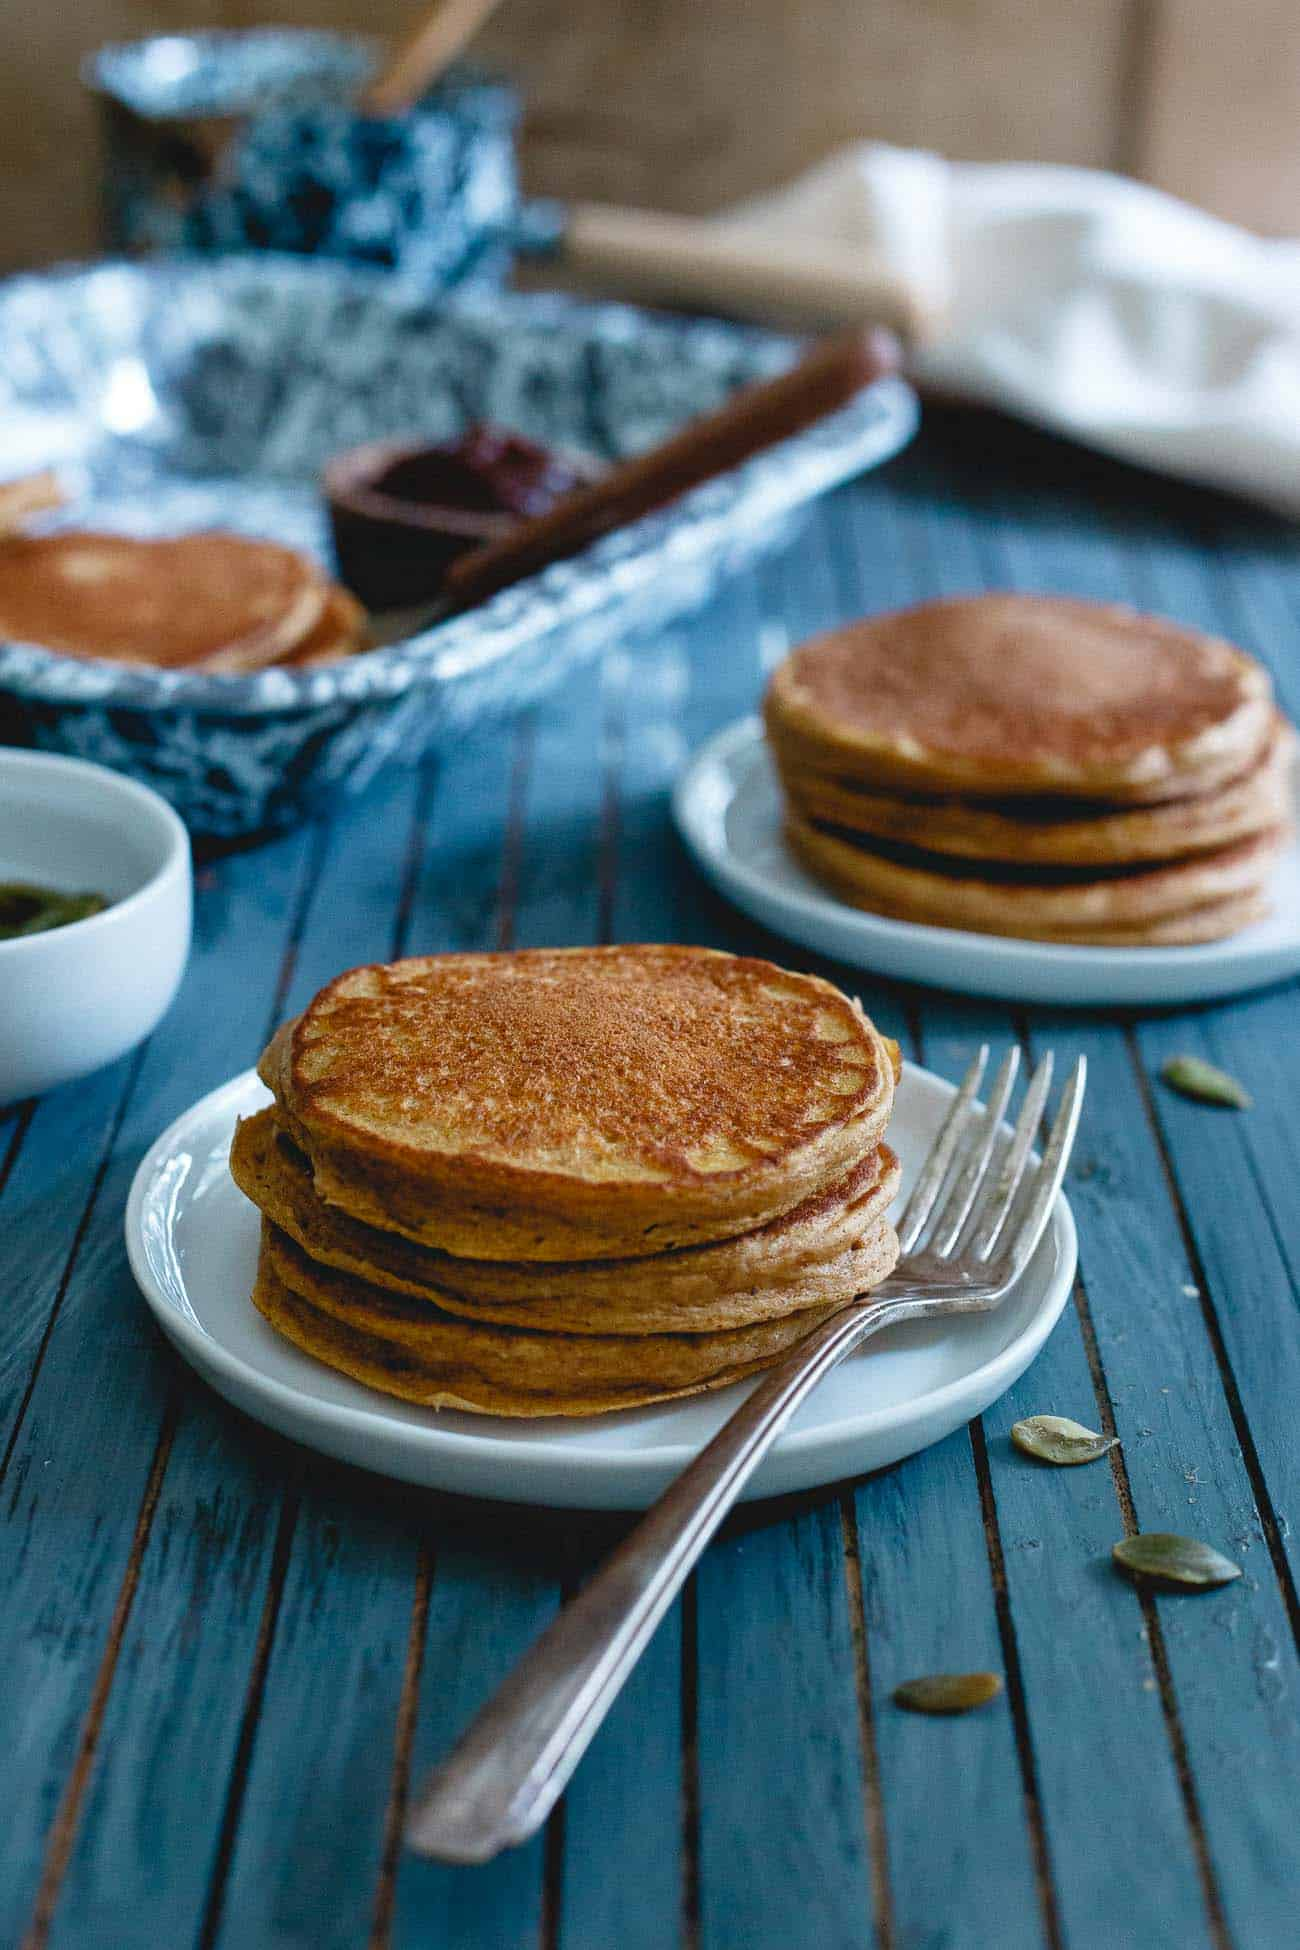 Loaded with added protein from collagen peptides, egg-whites and healthy whole wheat flour, these pumpkin protein pancakes will keep you full all morning long!